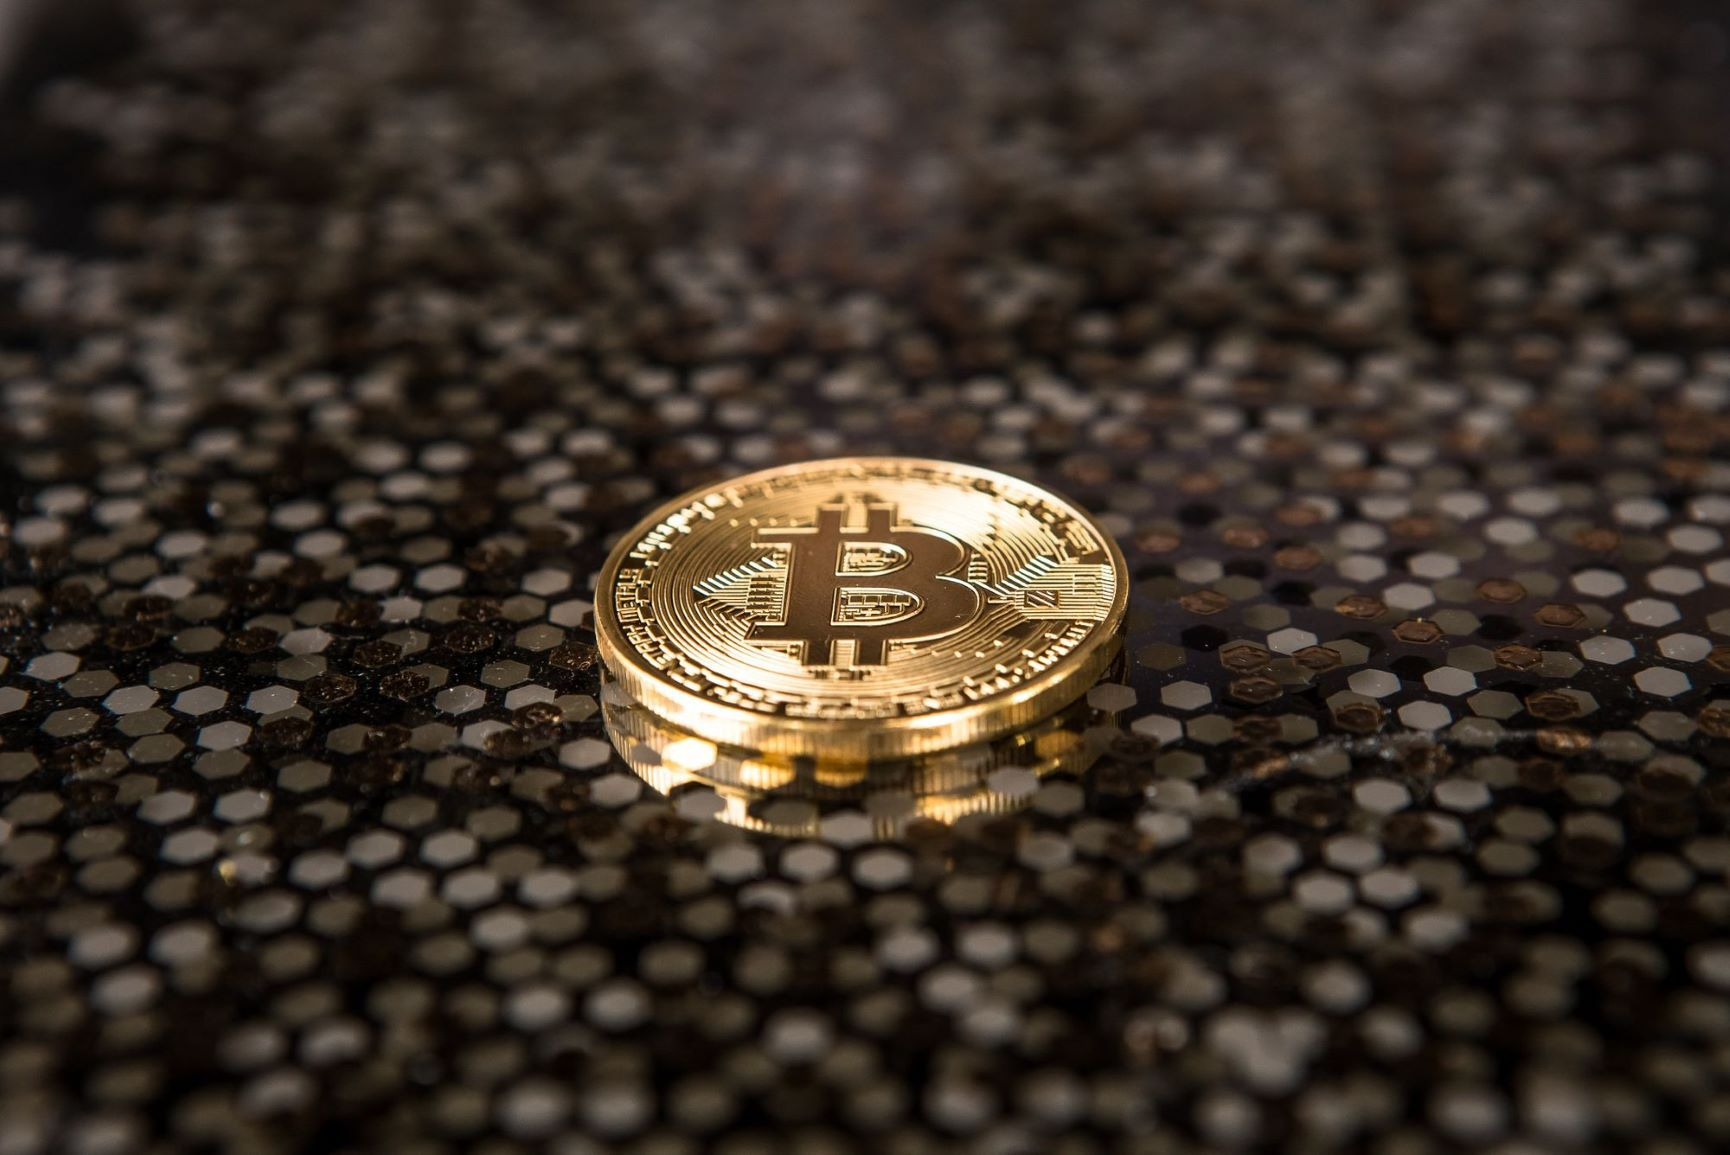 Billions Worth of Bitcoin from Mt. Gox Hack Recoverable